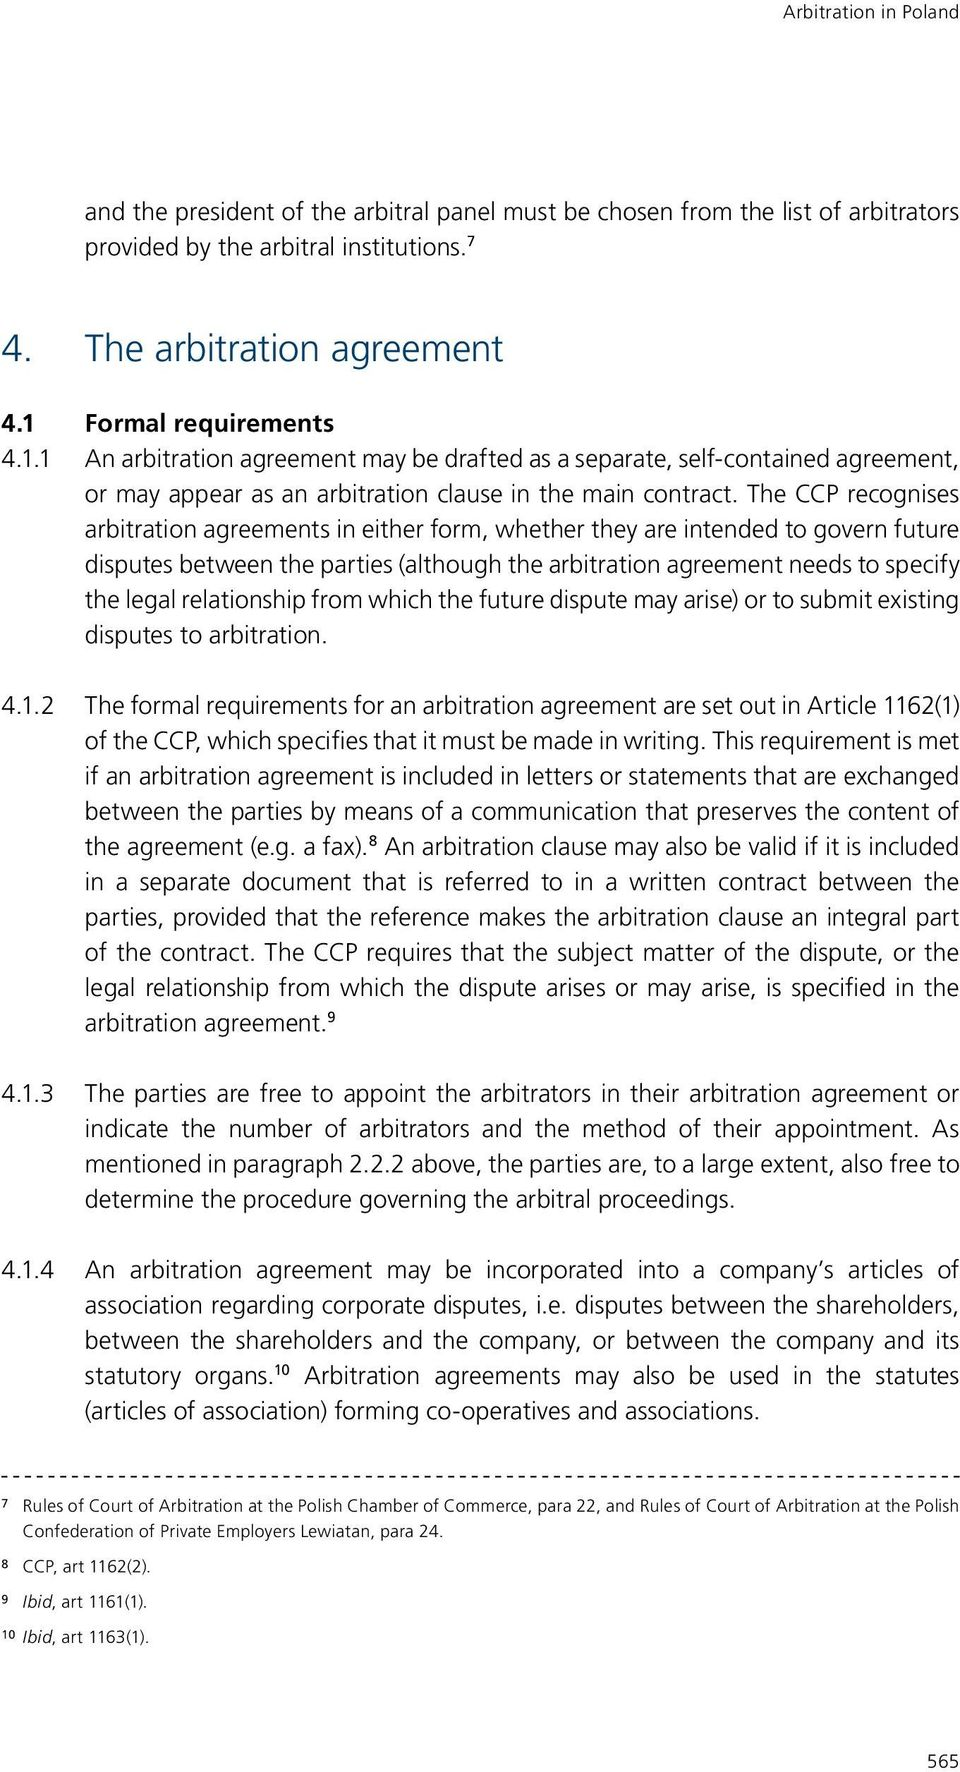 The CCP recognises arbitration agreements in either form, whether they are intended to govern future disputes between the parties (although the arbitration agreement needs to specify the legal